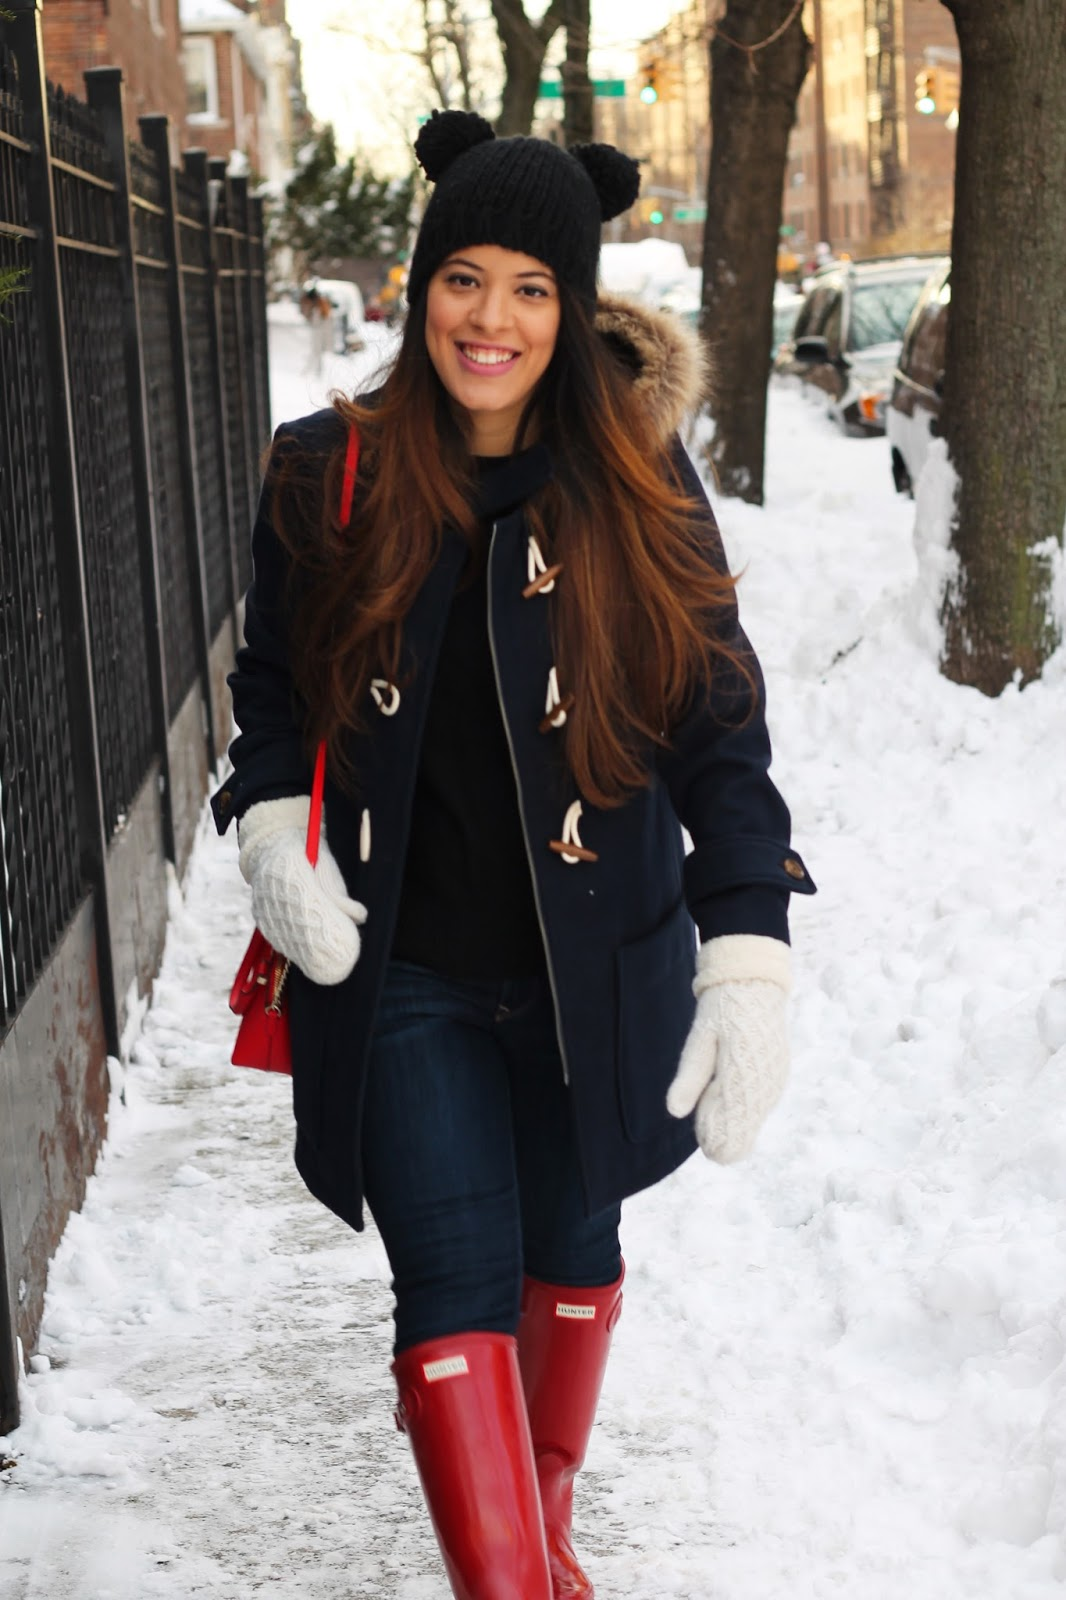 winter look, oldnavy, hunter rain boots, hunter, red gloss hunter rain boots, new york, winter, winter style, navy toggle coat, kate spade, pom pom hat, fashion blogger, fashion, style, ootd, outfit of the day, rain boots, red, mittens, prima donna, banana republic, express, jeans, dark wash jeans, latina blogger, nyc blogger, snow, black sweater